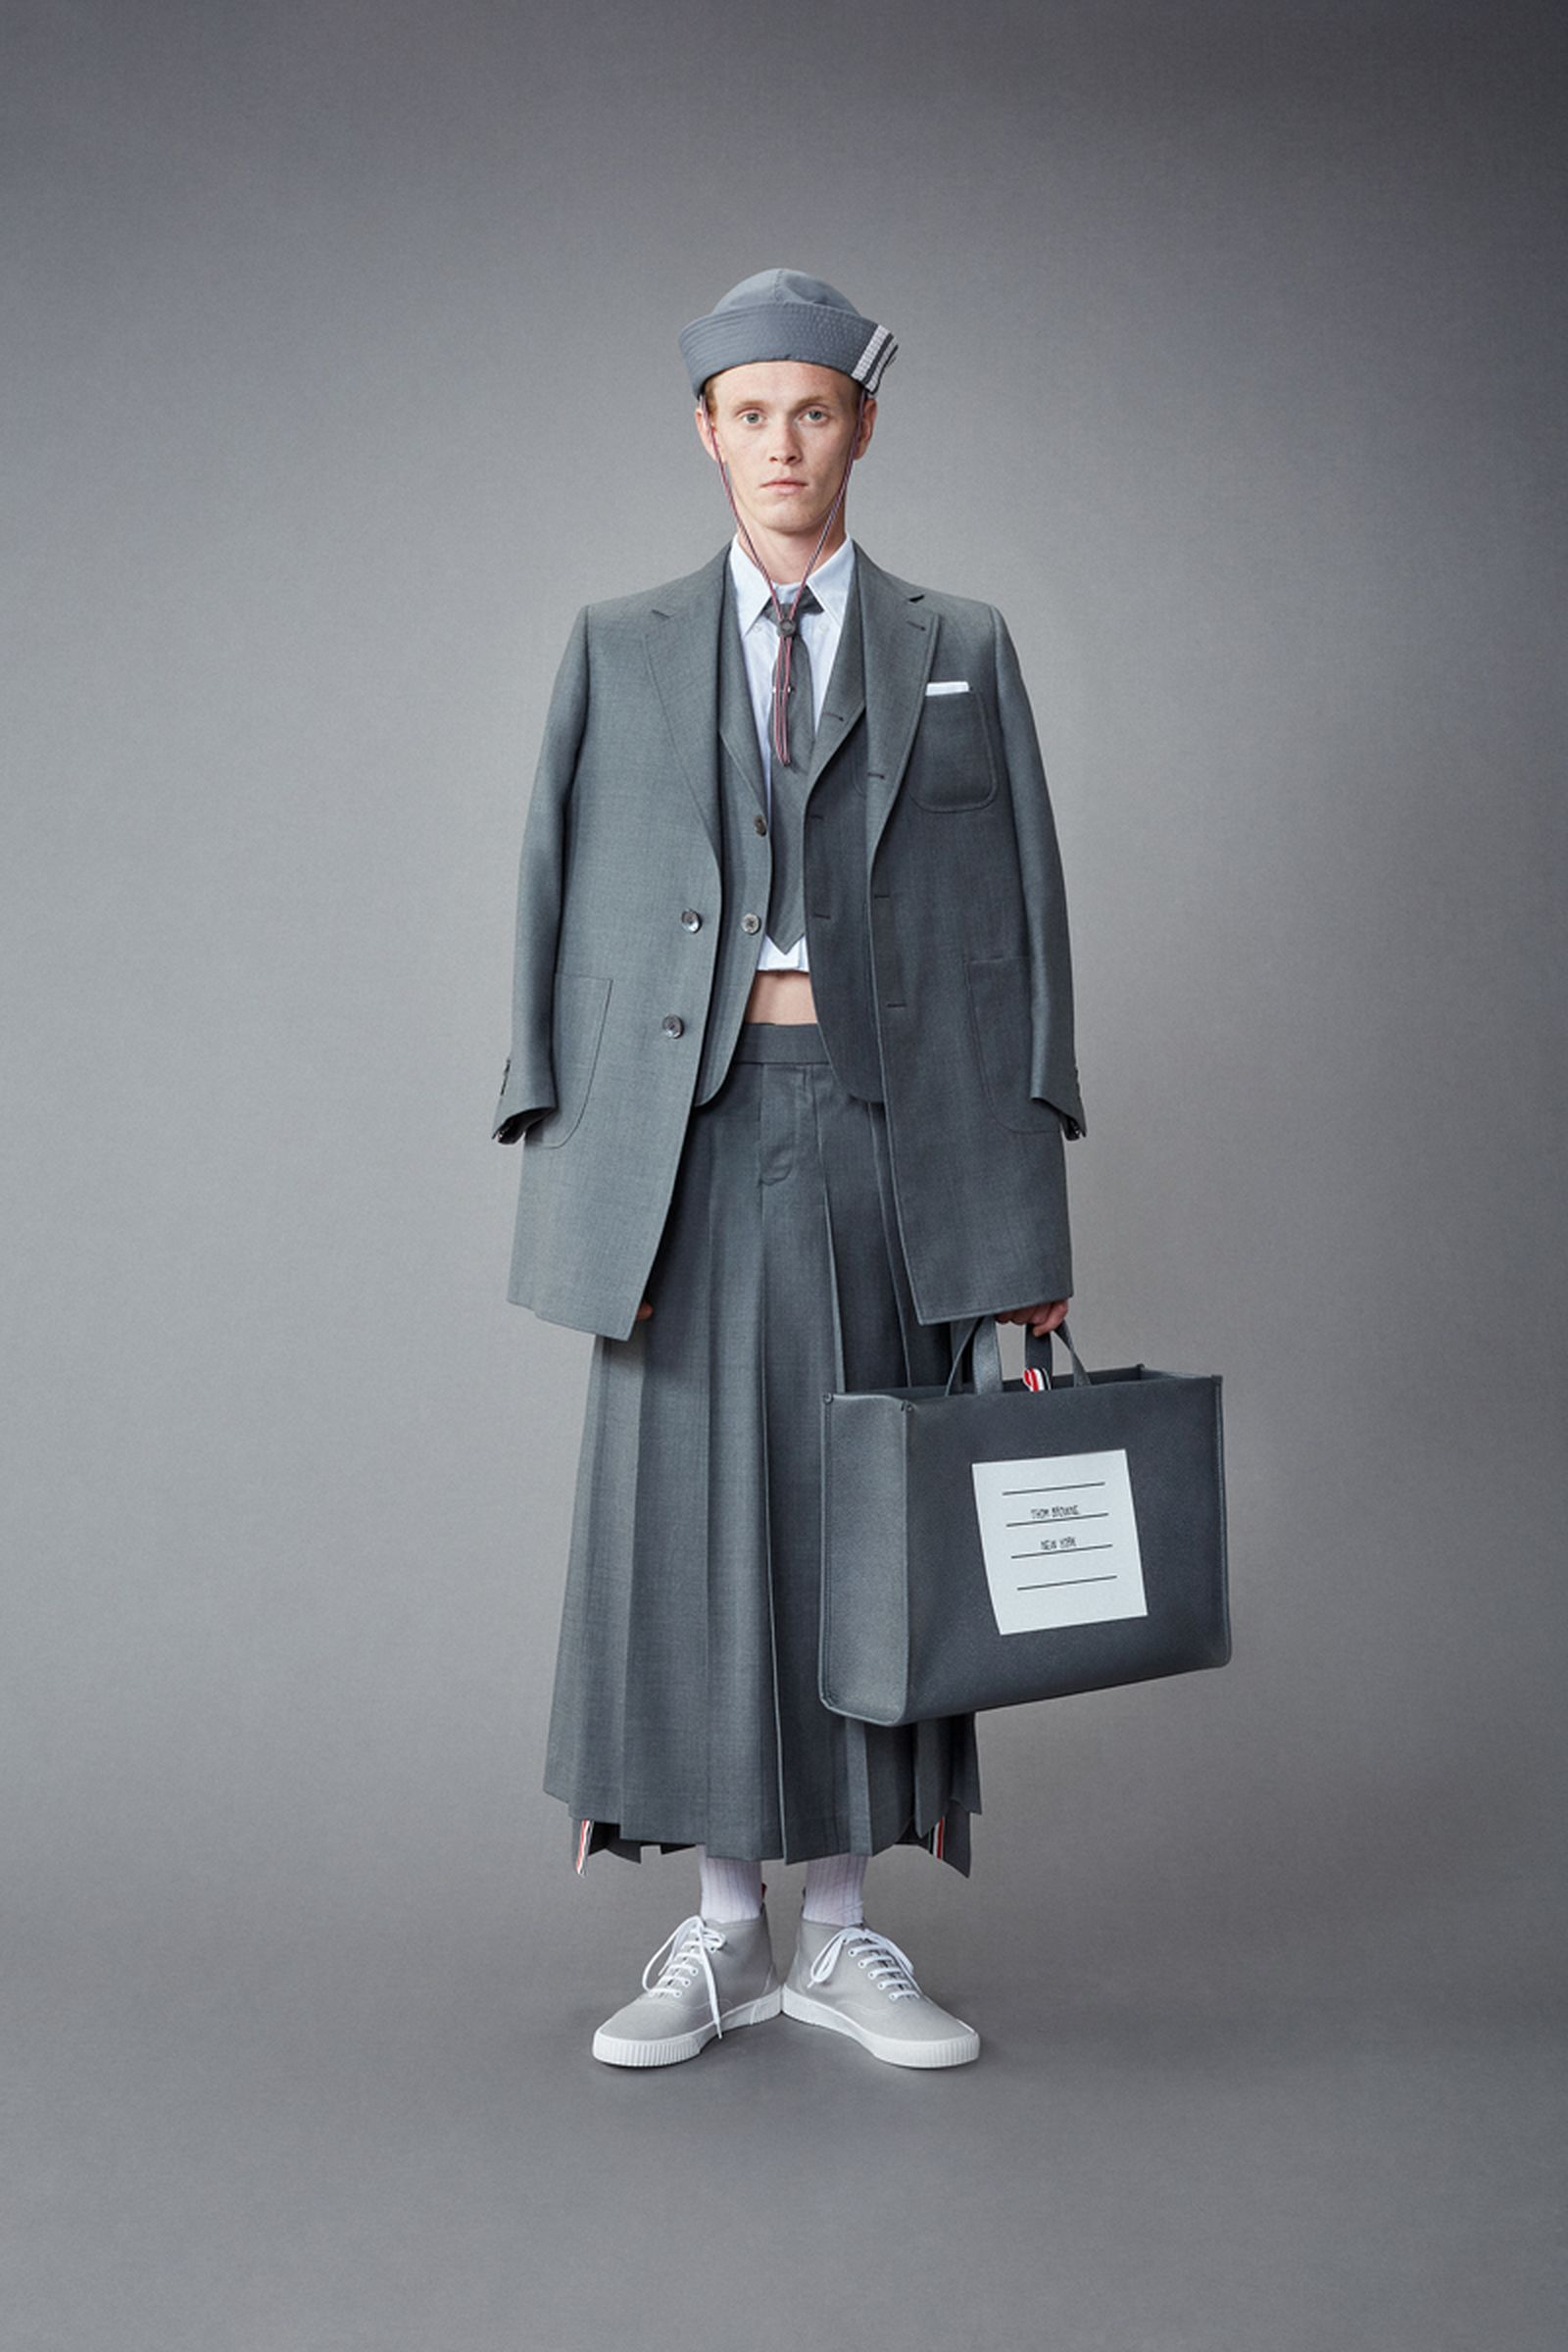 thom-browne-resort-2022-collection- (17)